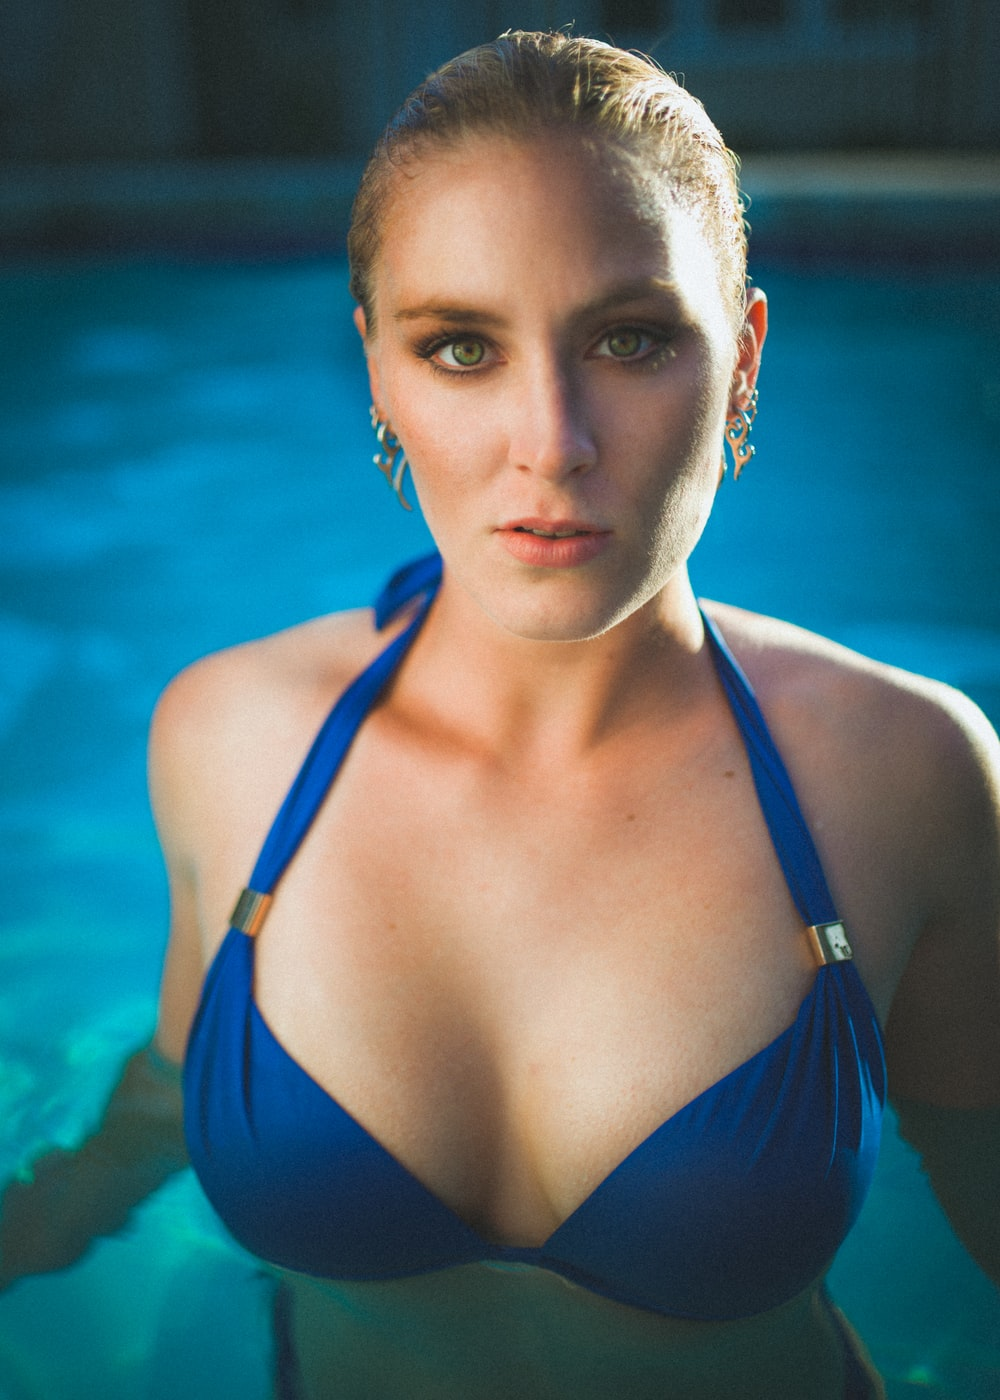 woman in blue string bikini top in pool looking straight